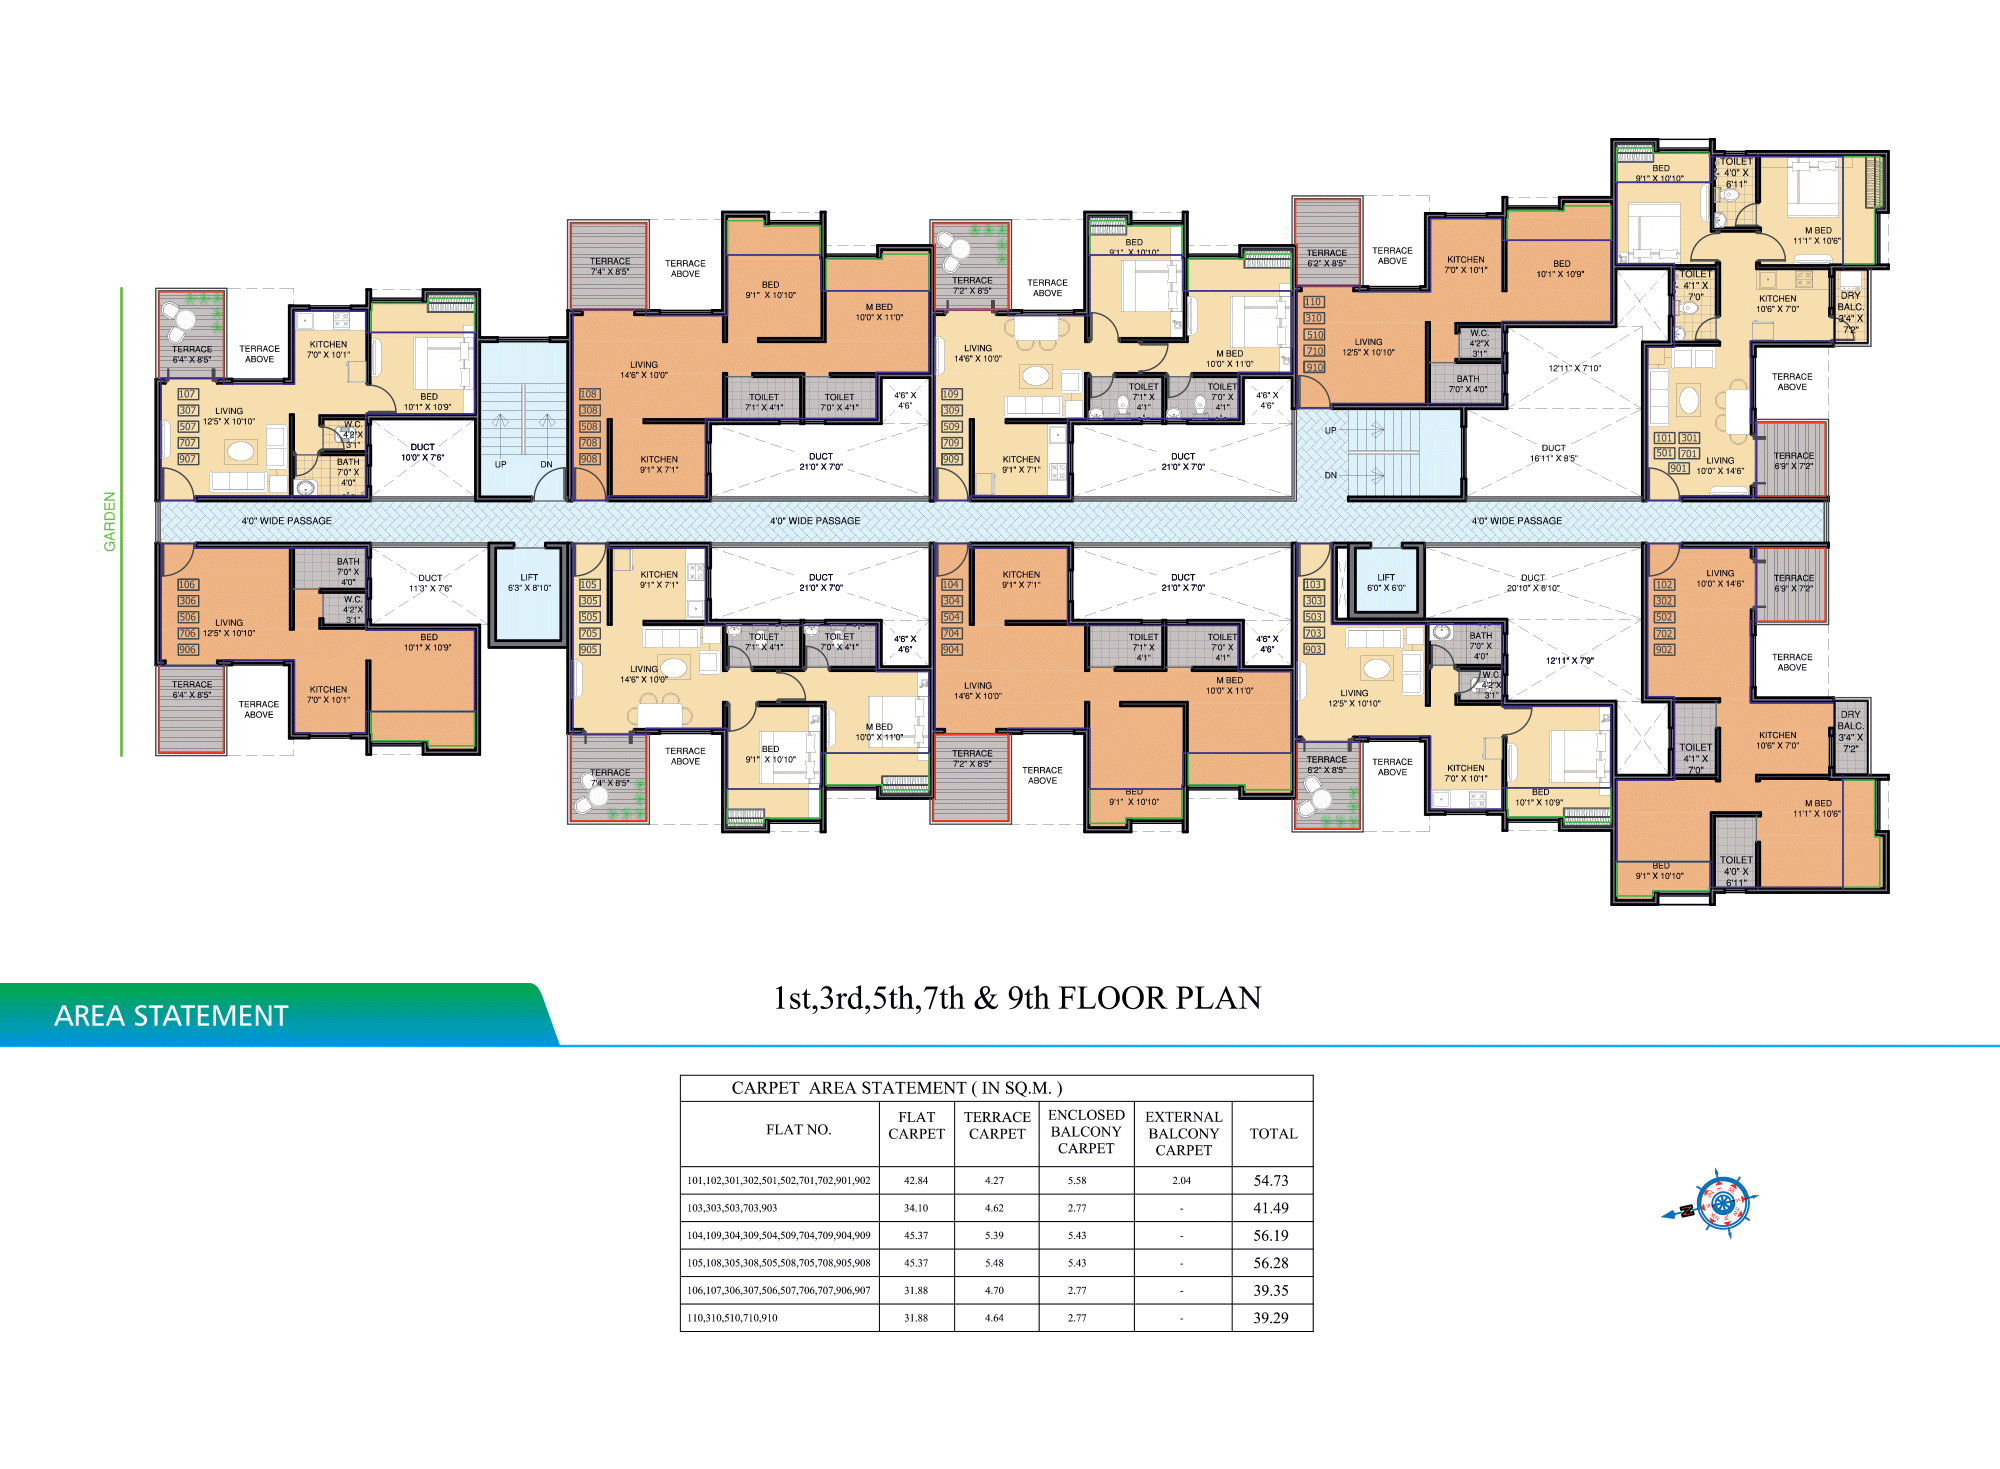 Pristine Aakanksha_1,3,5,7 FLOOR PLAN